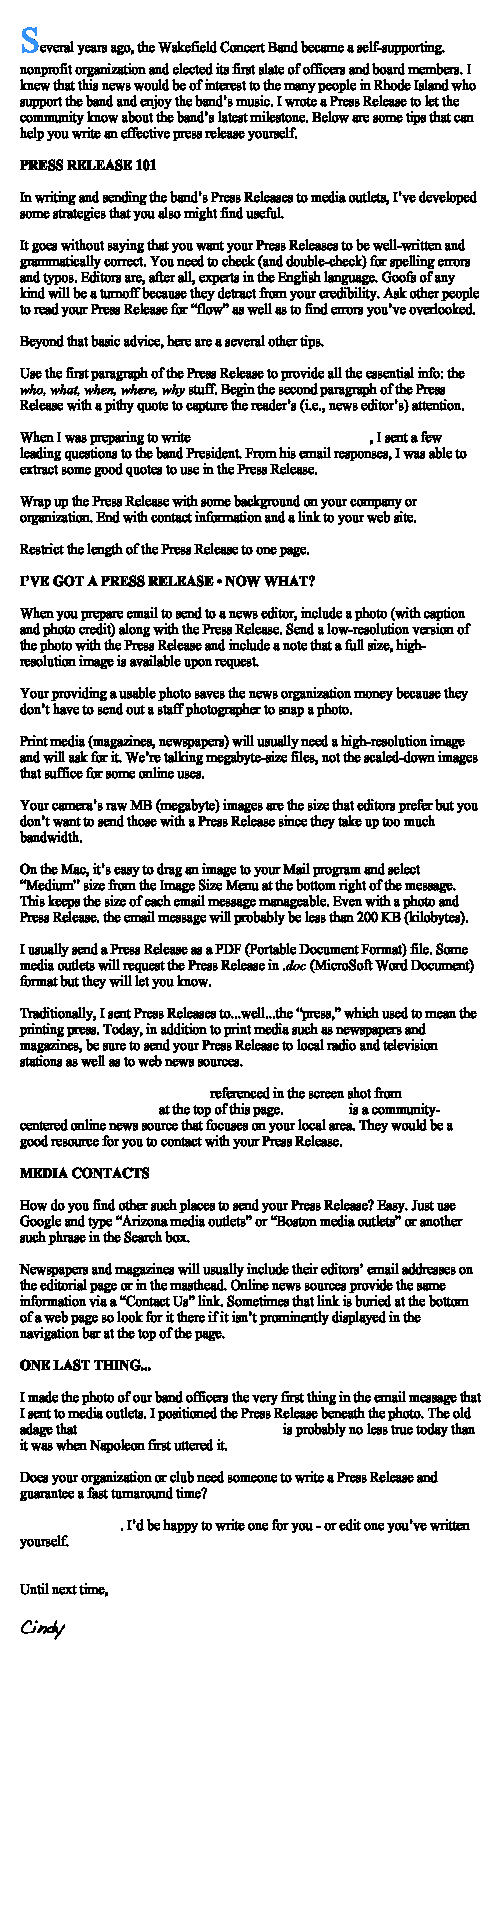 Concert Press Release Template Lovely How to Write A Press Release